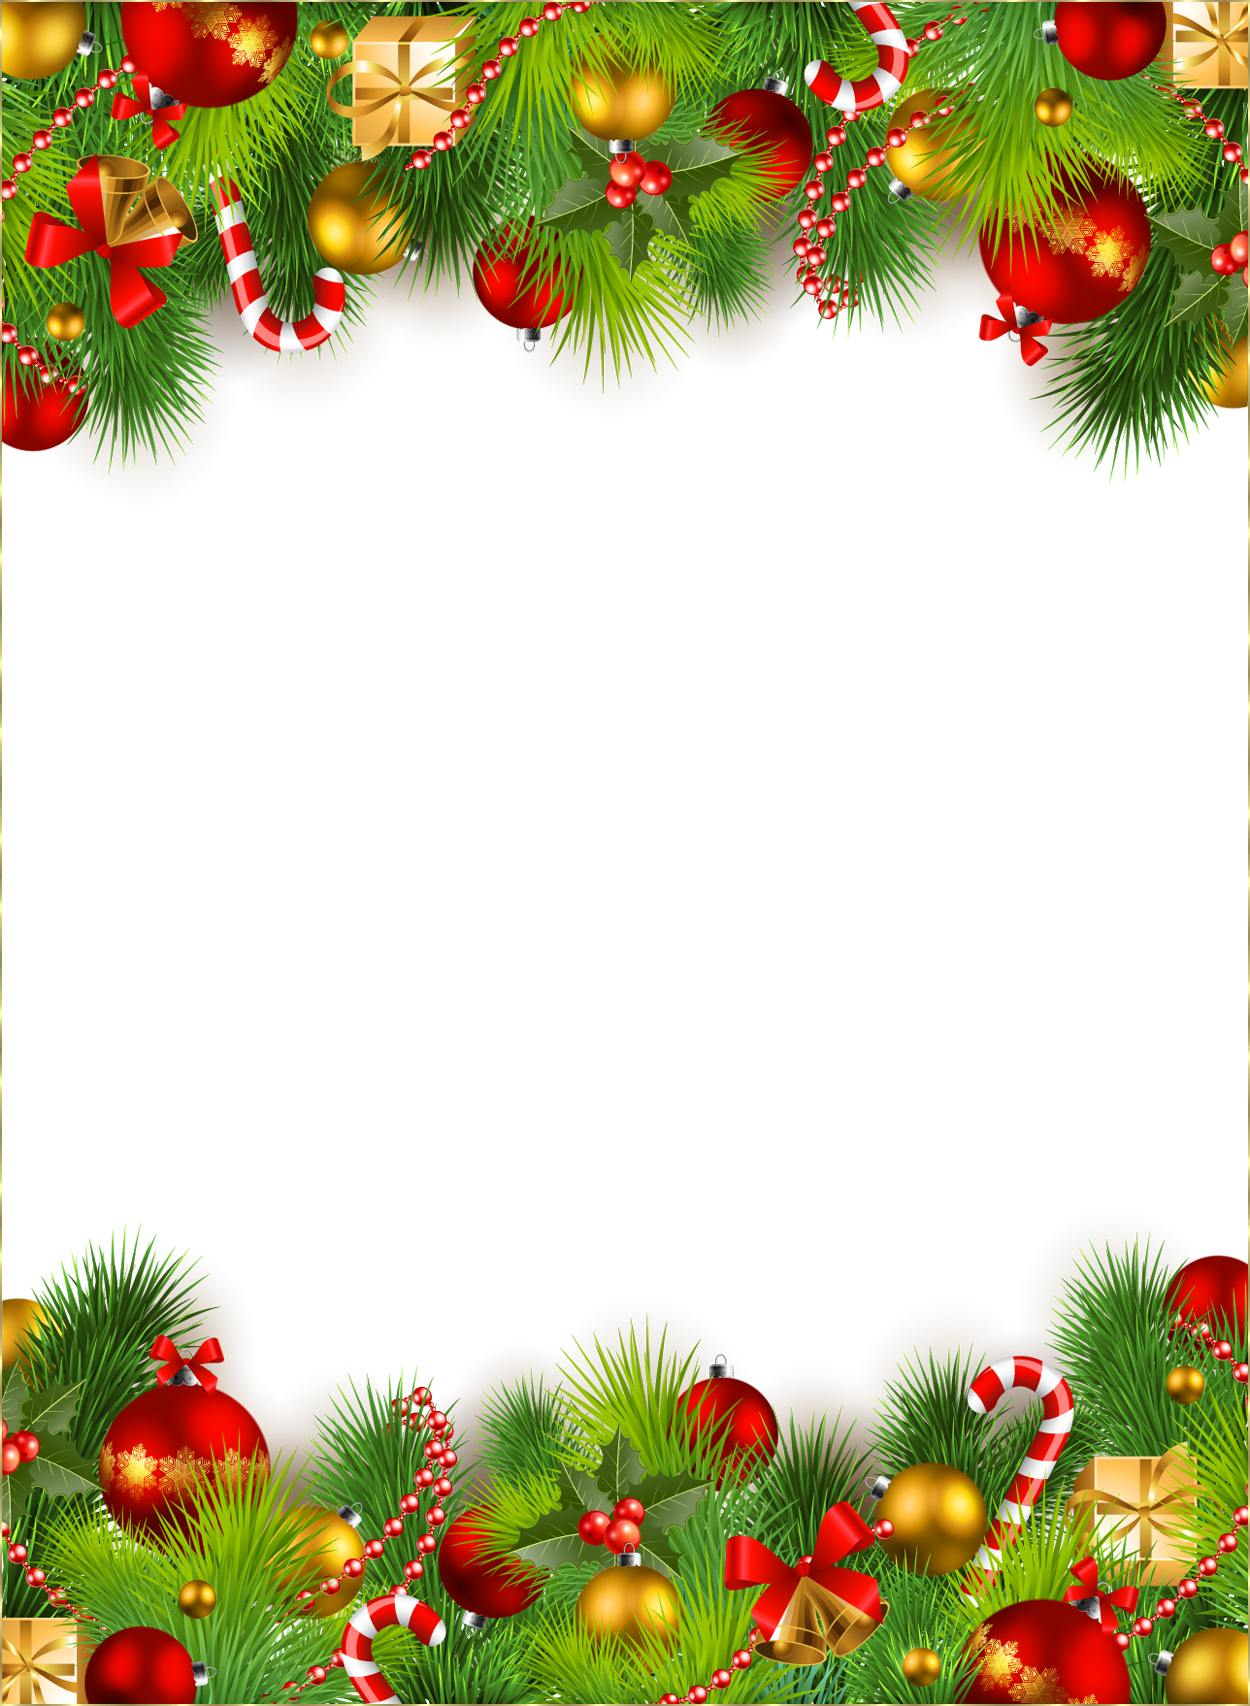 Ornaments acur lunamedia co. Christmas frame png